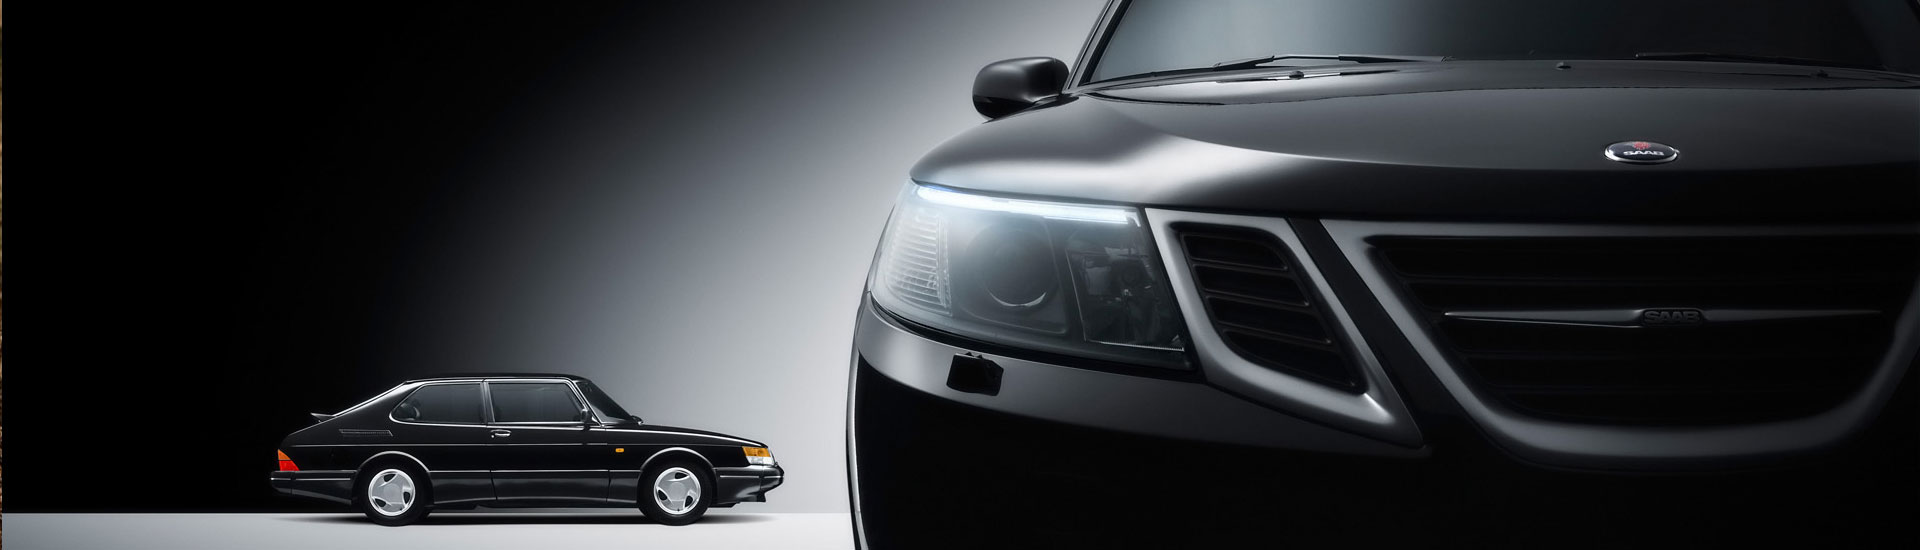 Saab Headlight Tint Covers